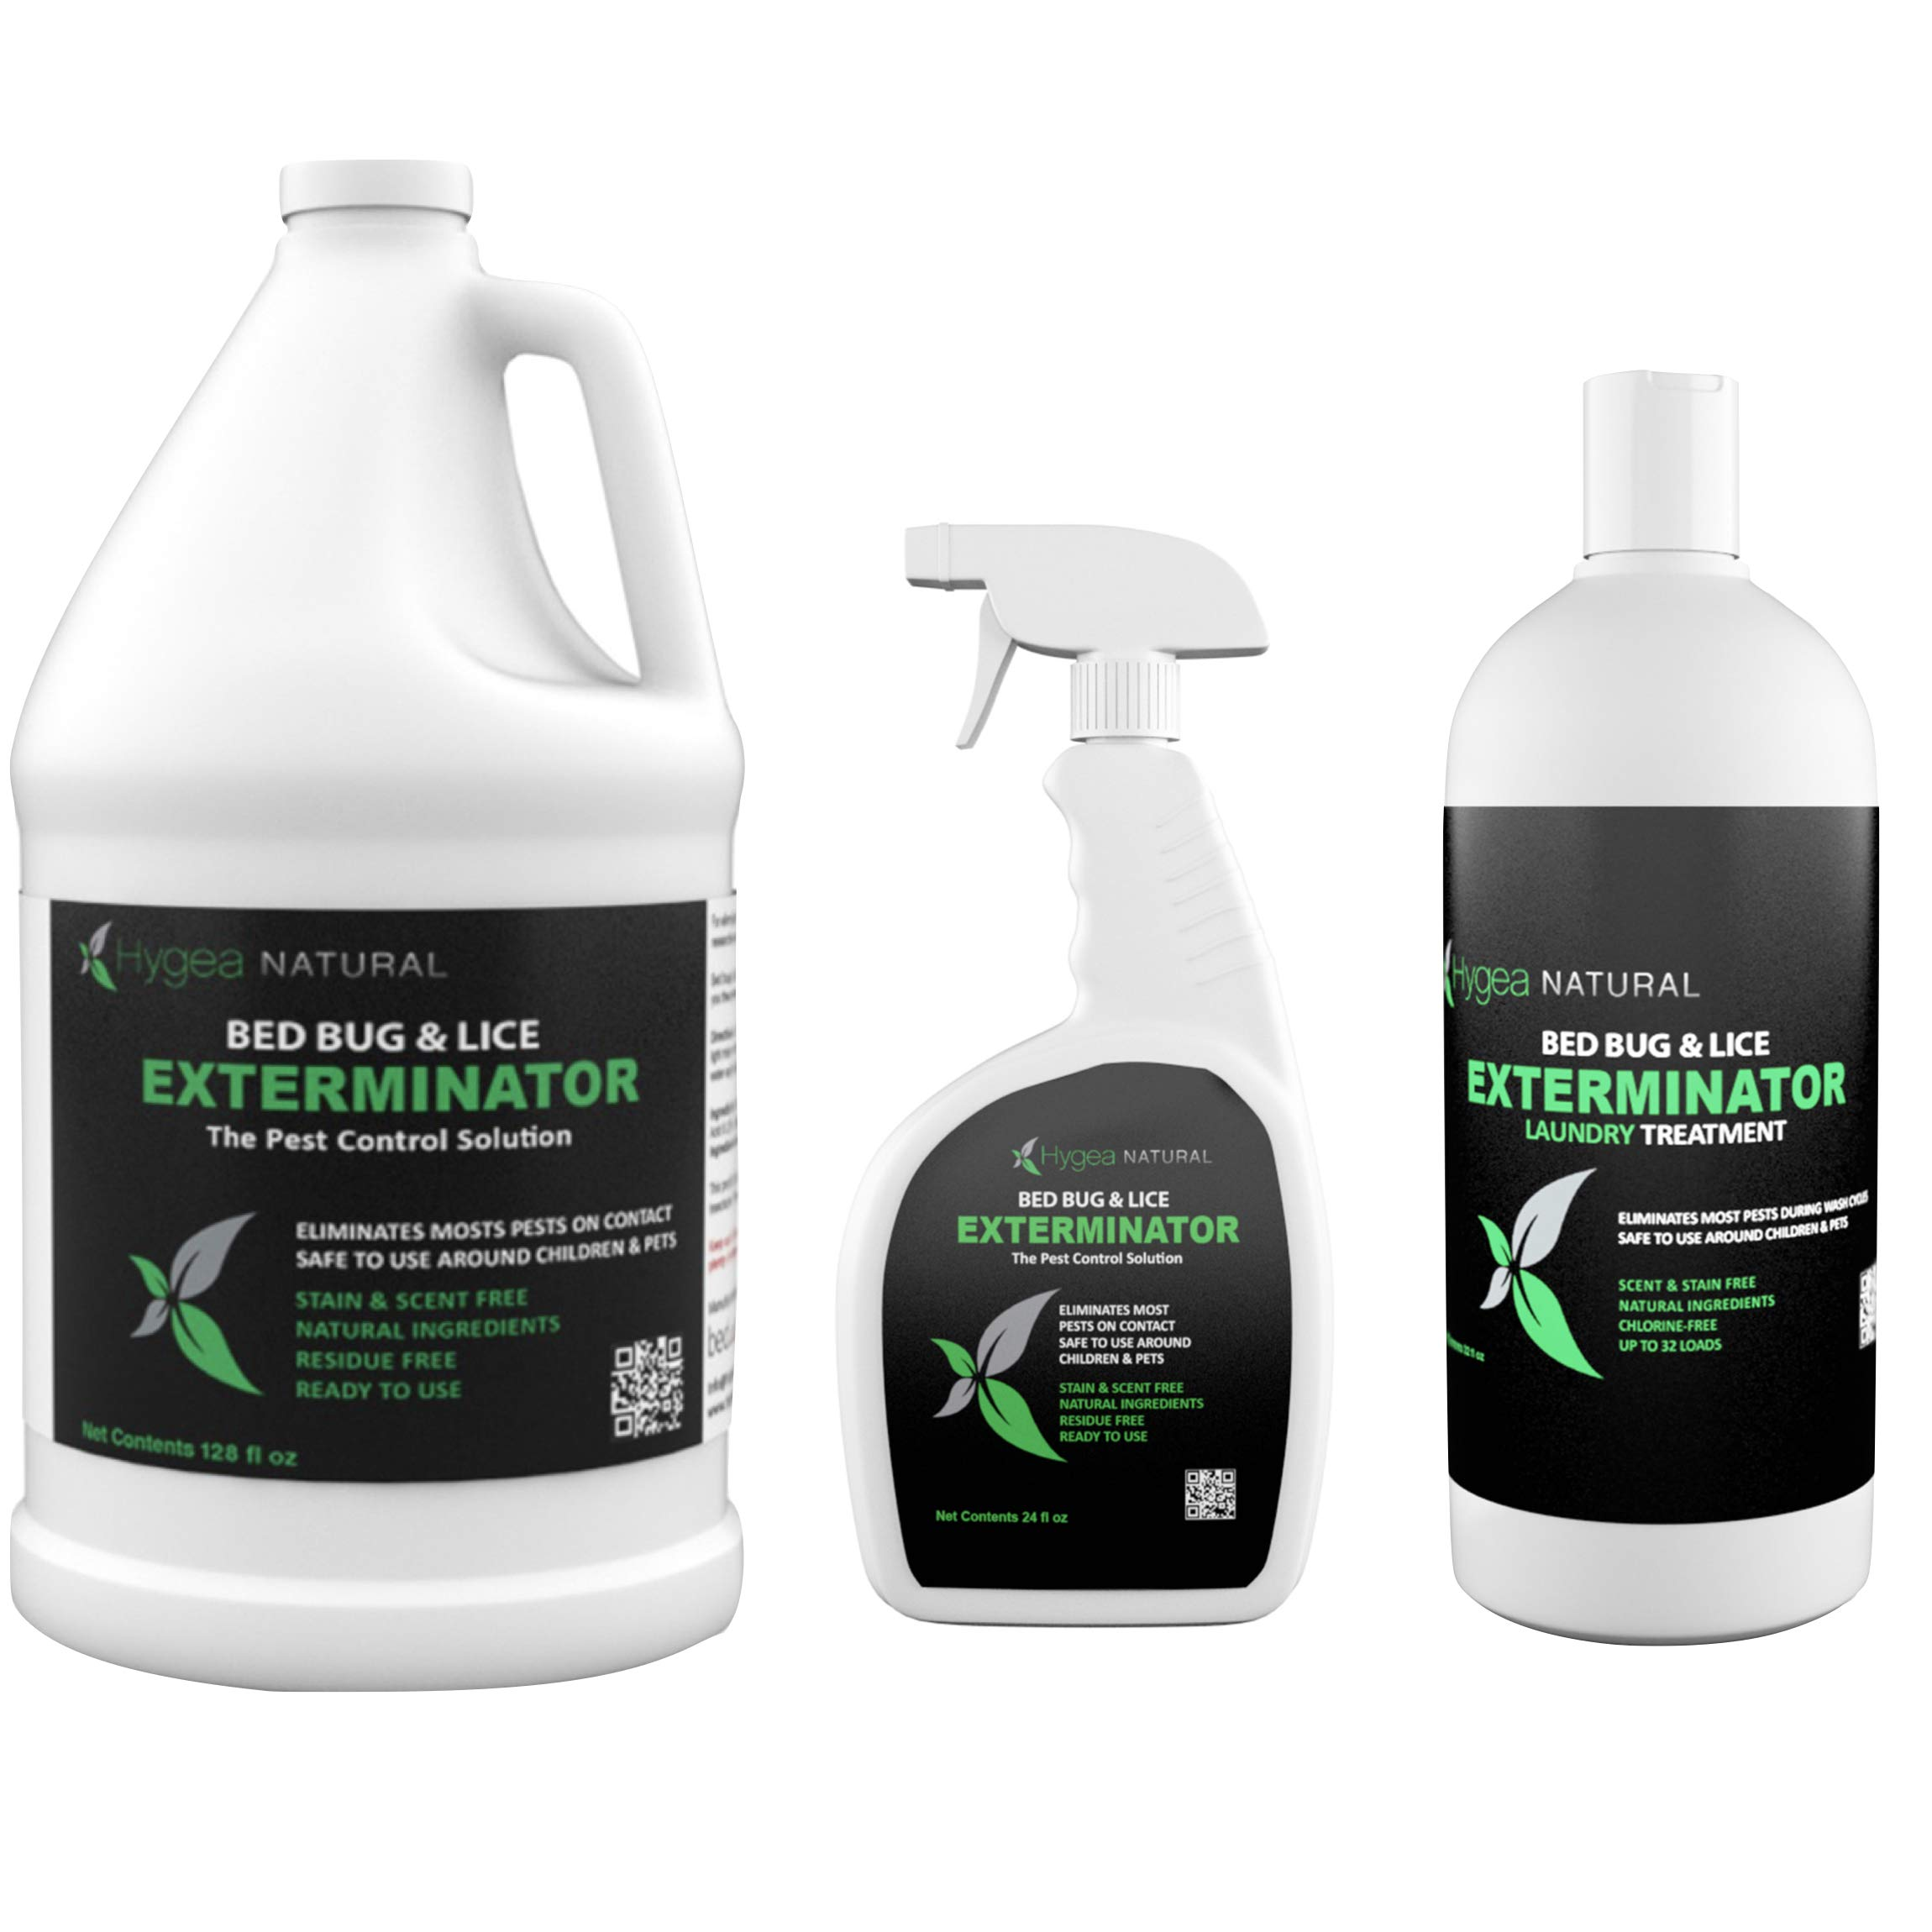 Hygea Natural Exterminator Combo Pack, Non Toxic Treatment, Natural Bugs & Lice Eradicator, Includes Bed Bug Spray 24 oz, Refill 128 oz & Laundry Treatment 32 oz by Hygea Natural